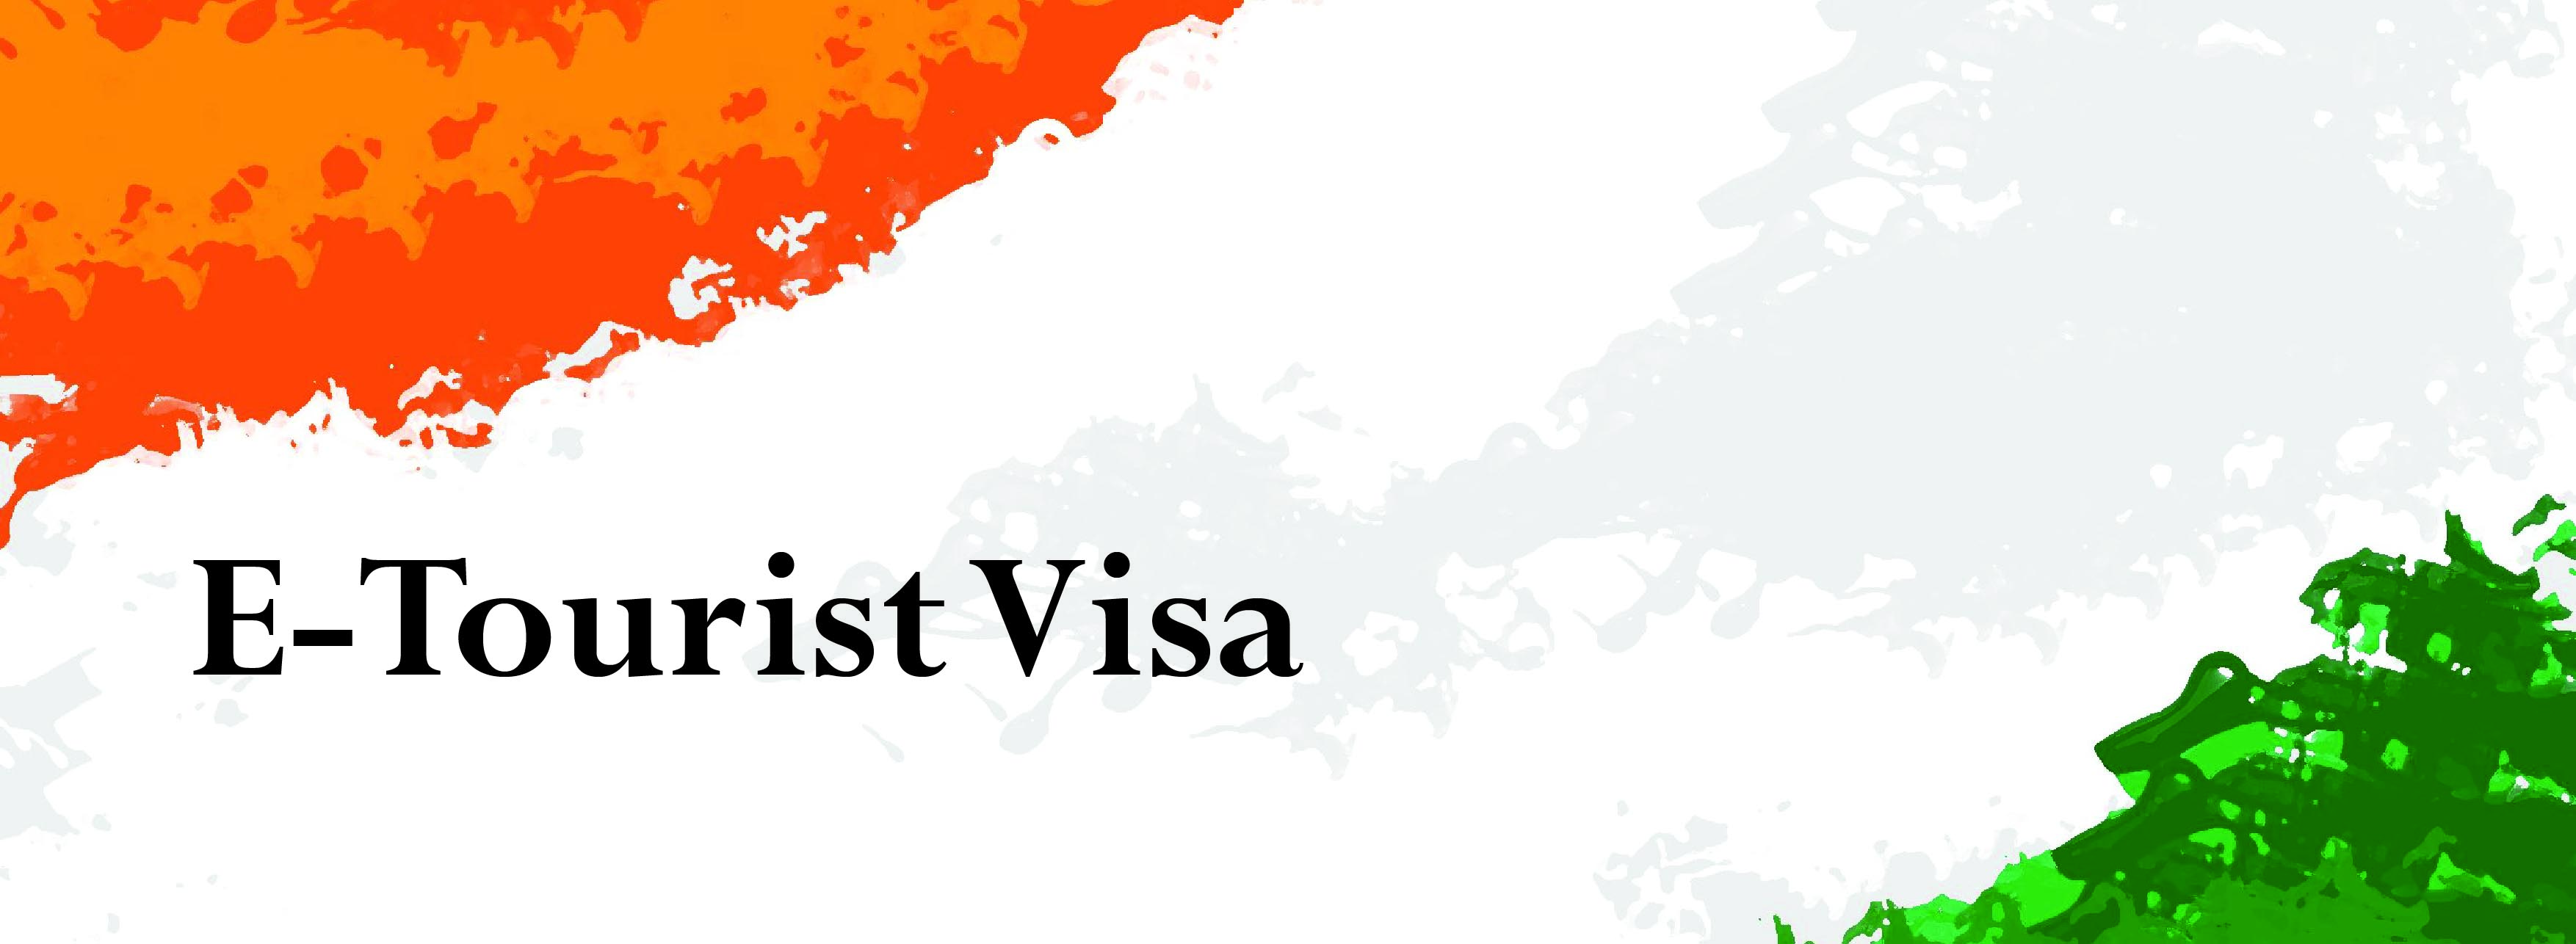 How to Get Indian E-Tourist Visa- A Perfect Guide